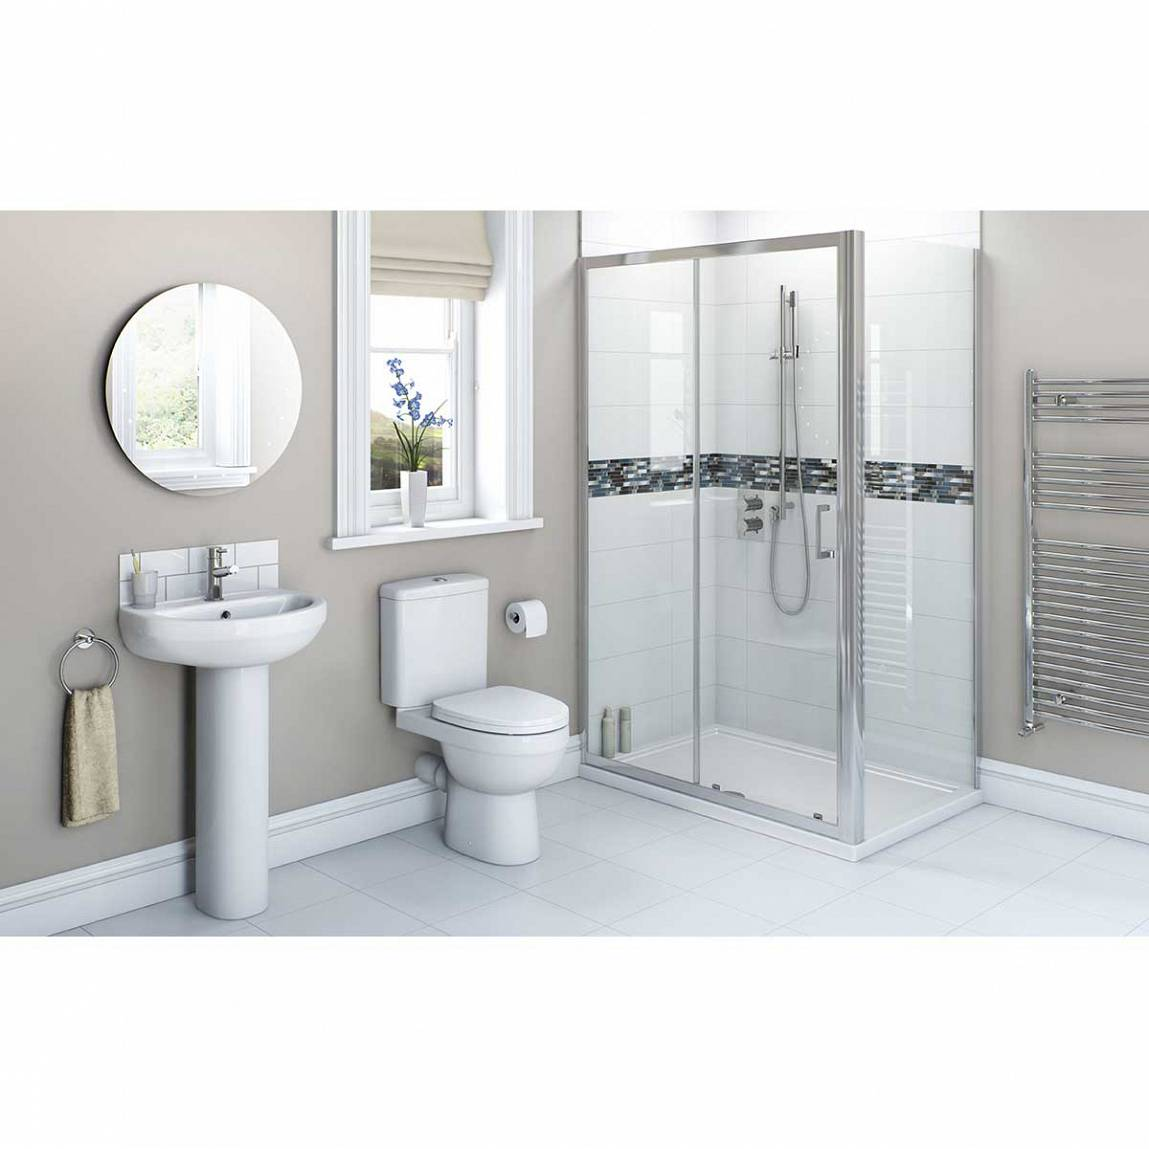 Image of Energy Bathroom set with 1000x700 Sliding Enclosure